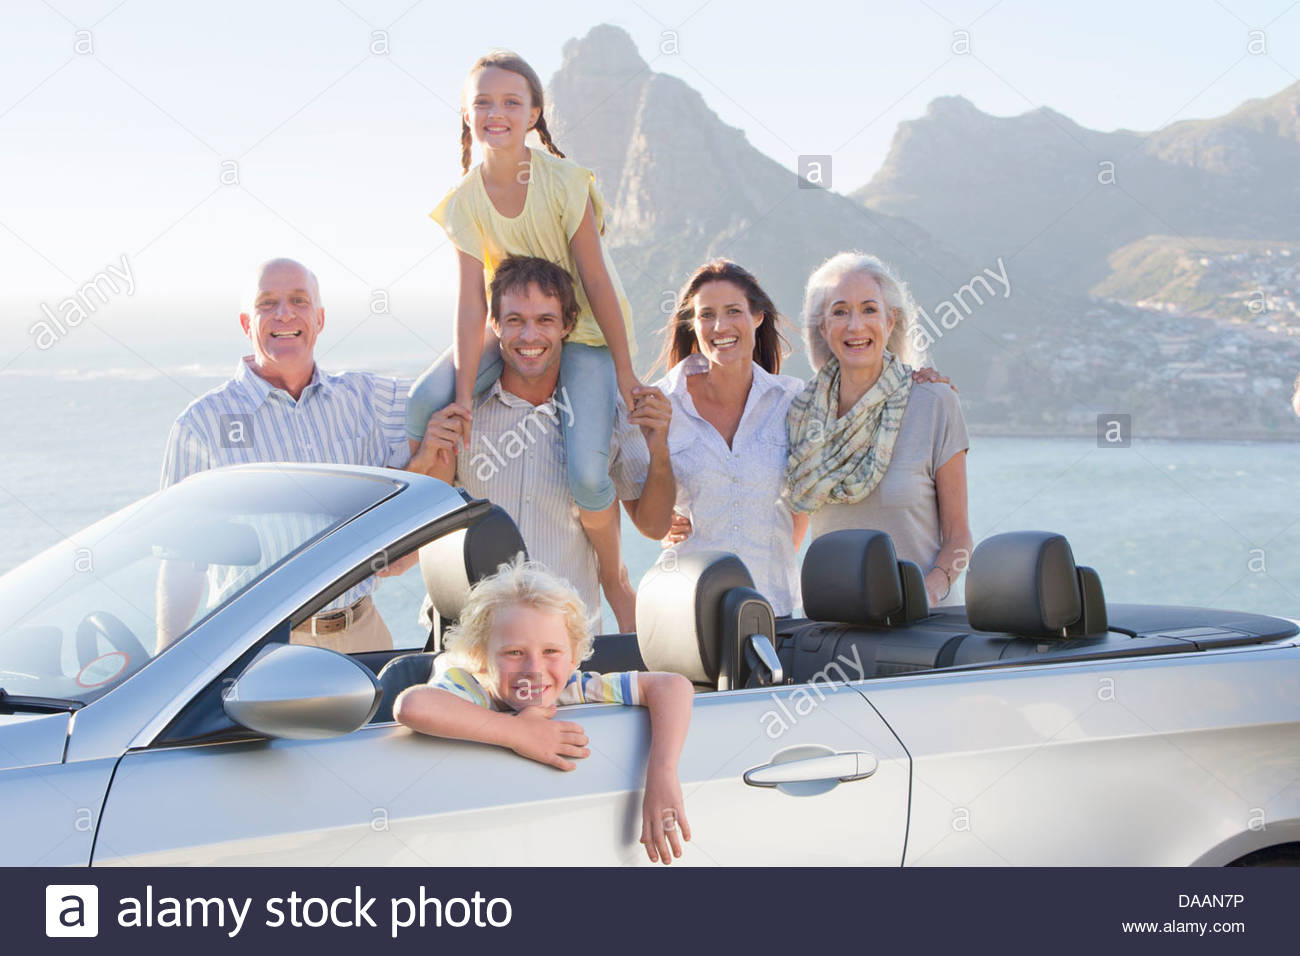 Portrait of happy multi-generation family with convertible near ocean - Stock Image